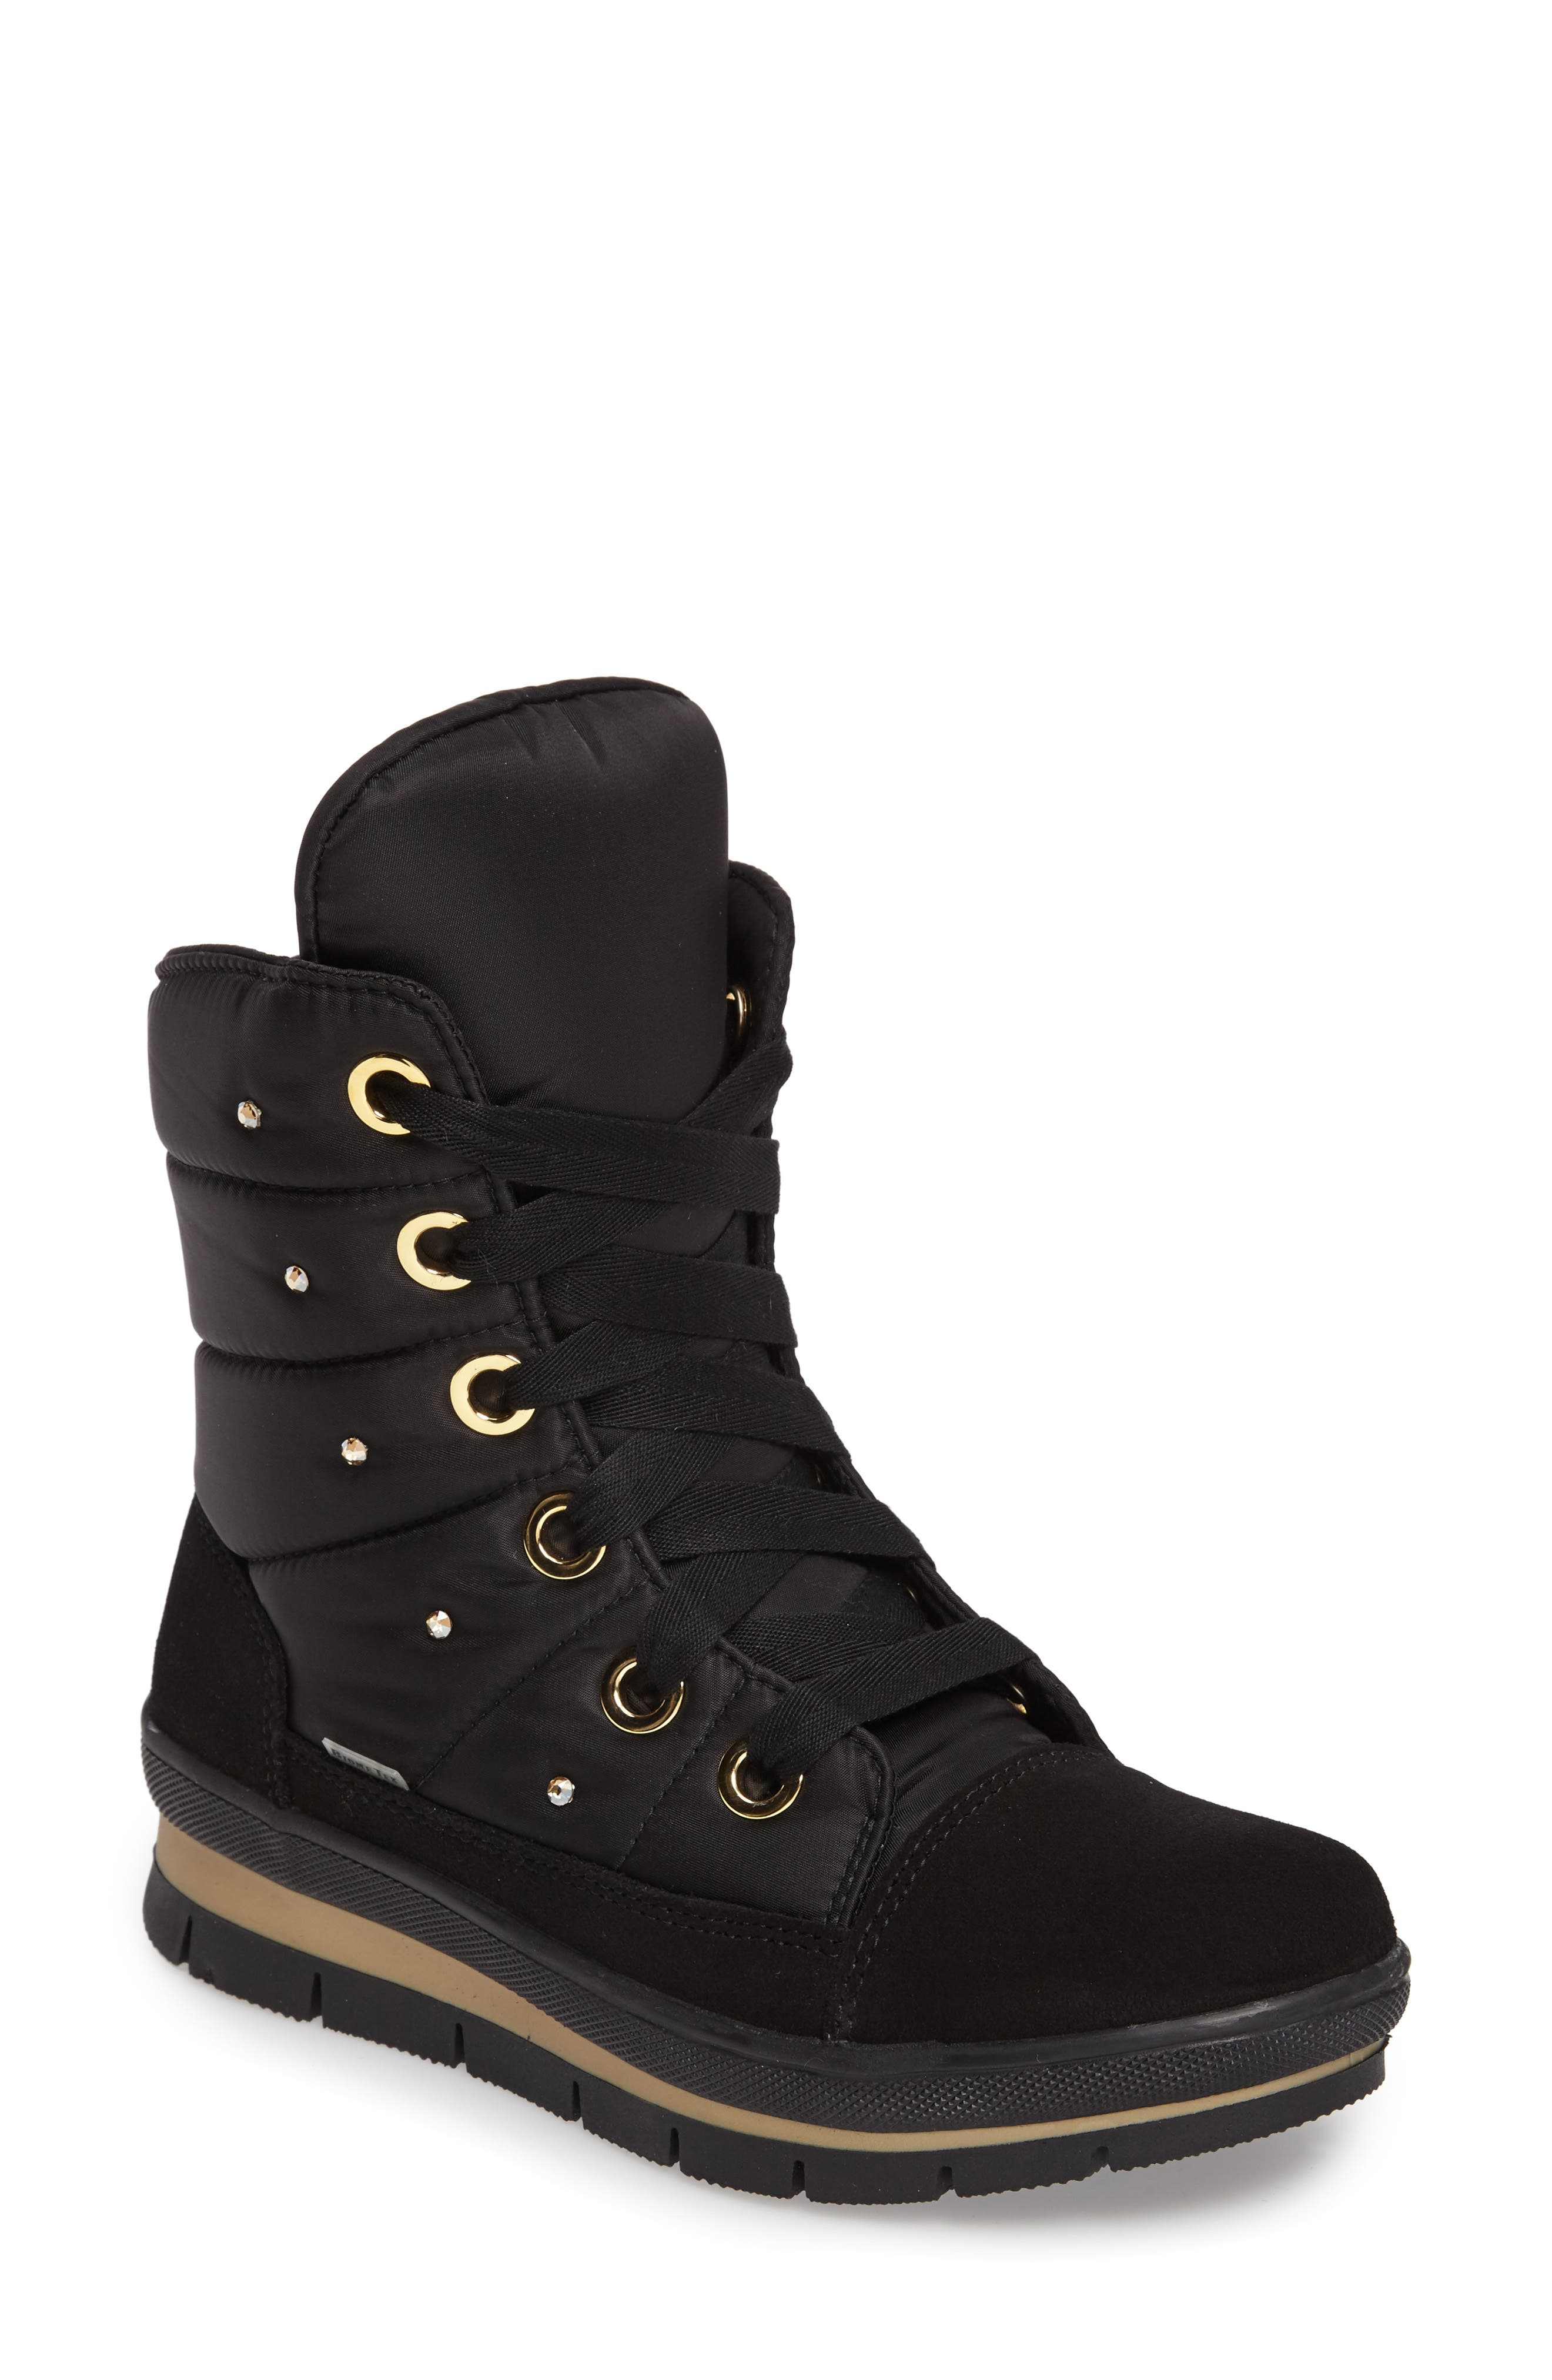 Verbier Waterproof Boot,                         Main,                         color, BLACK / GOLD SWAROVSKI